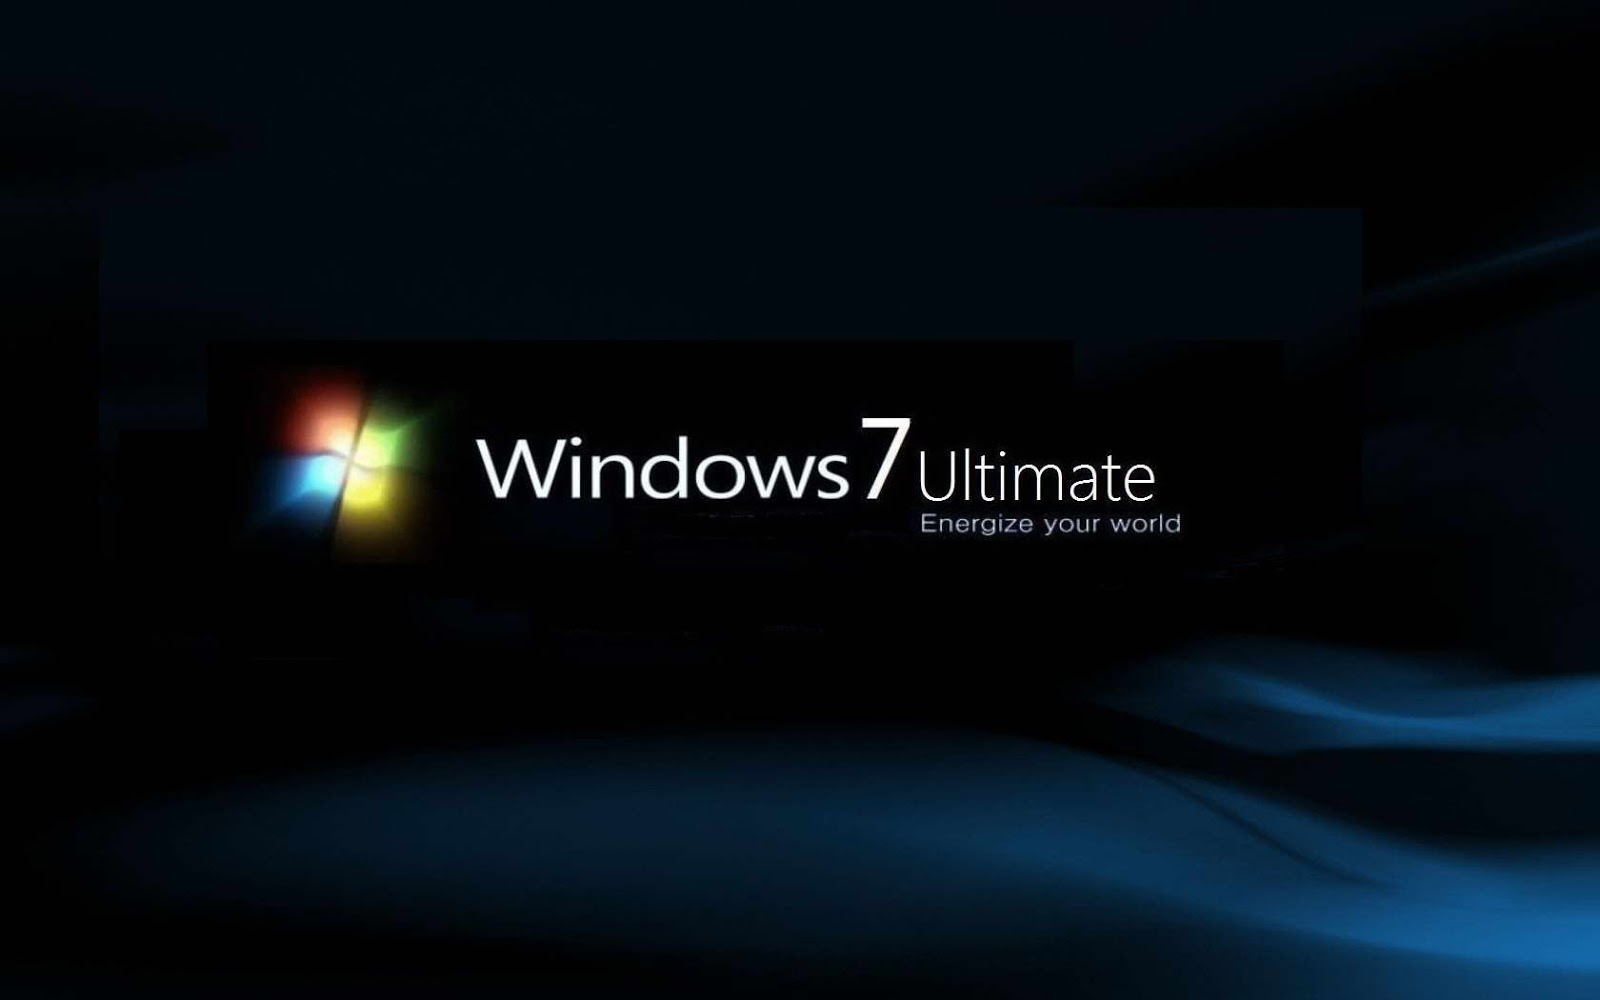 Games for windows 7 ultimate 32 bit